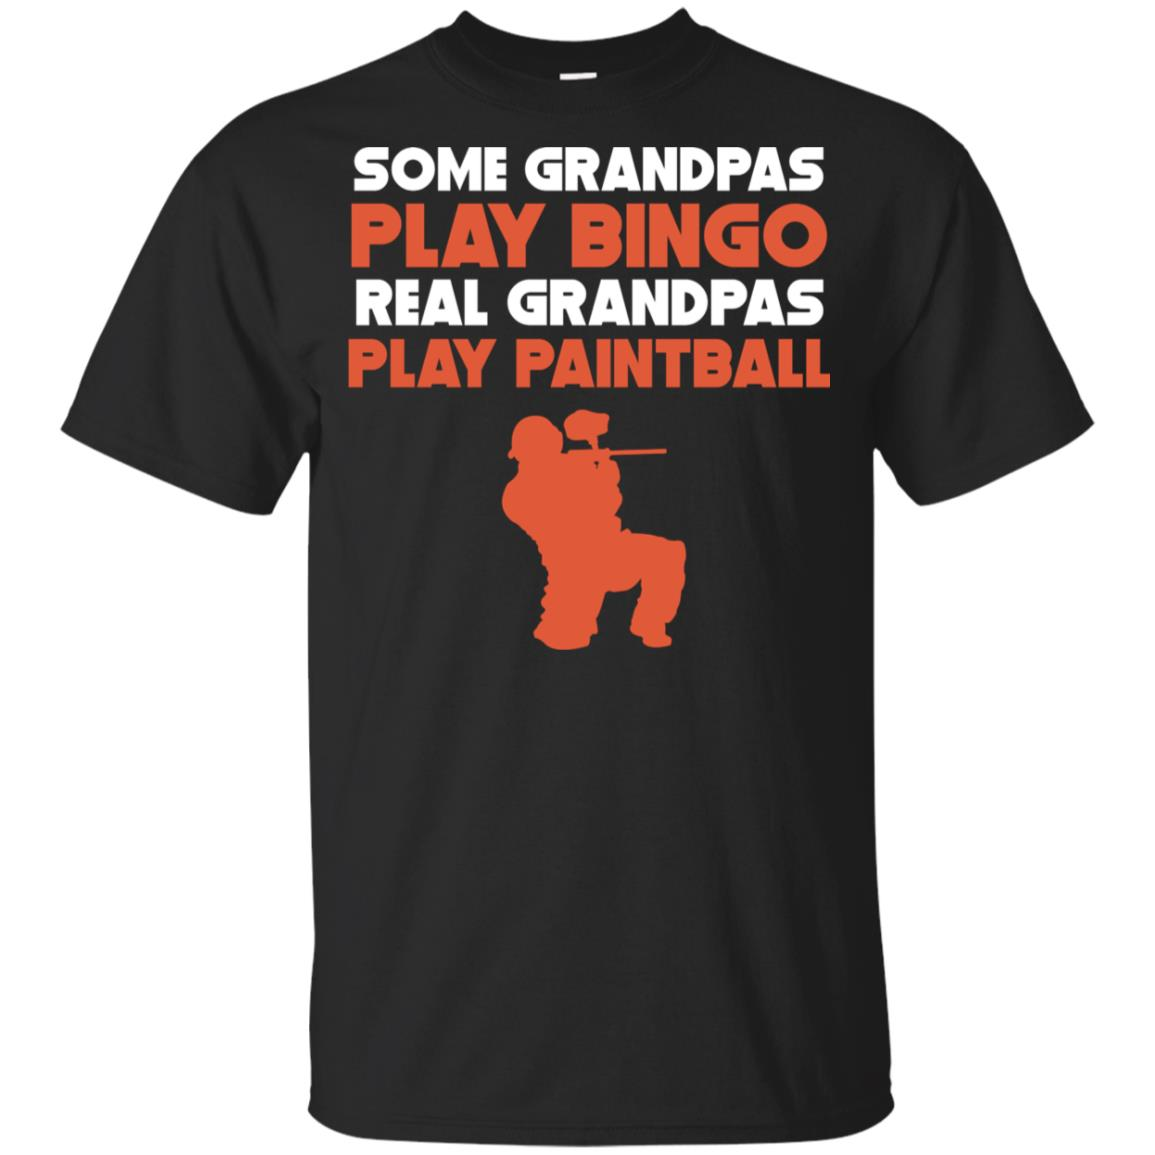 Some Grandpas Play Bingo Real Grandpas Play Paintball Youth Short Sleeve